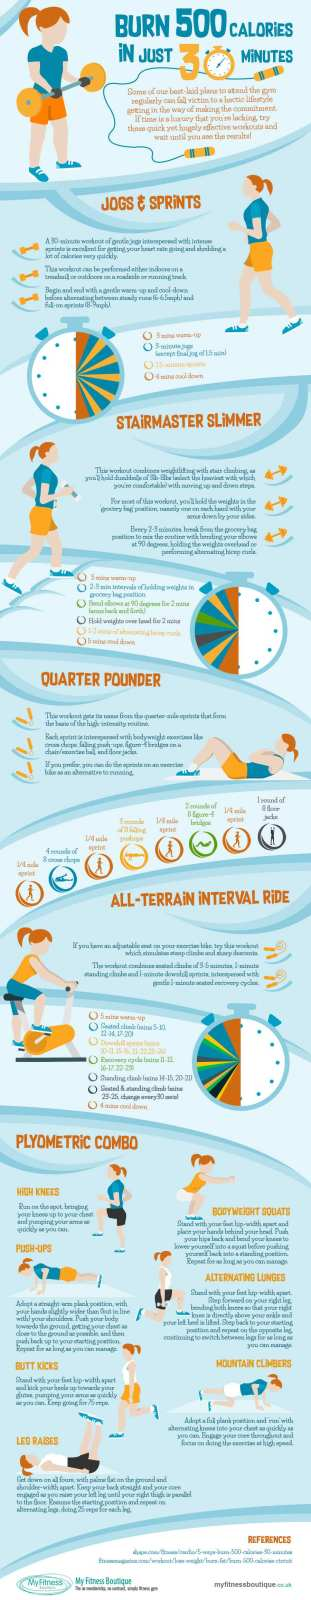 TRAINER TIPS Burn 500 Calories in Just 30 Minutes (Infographic), According to a Trainer by MICHEAL N.